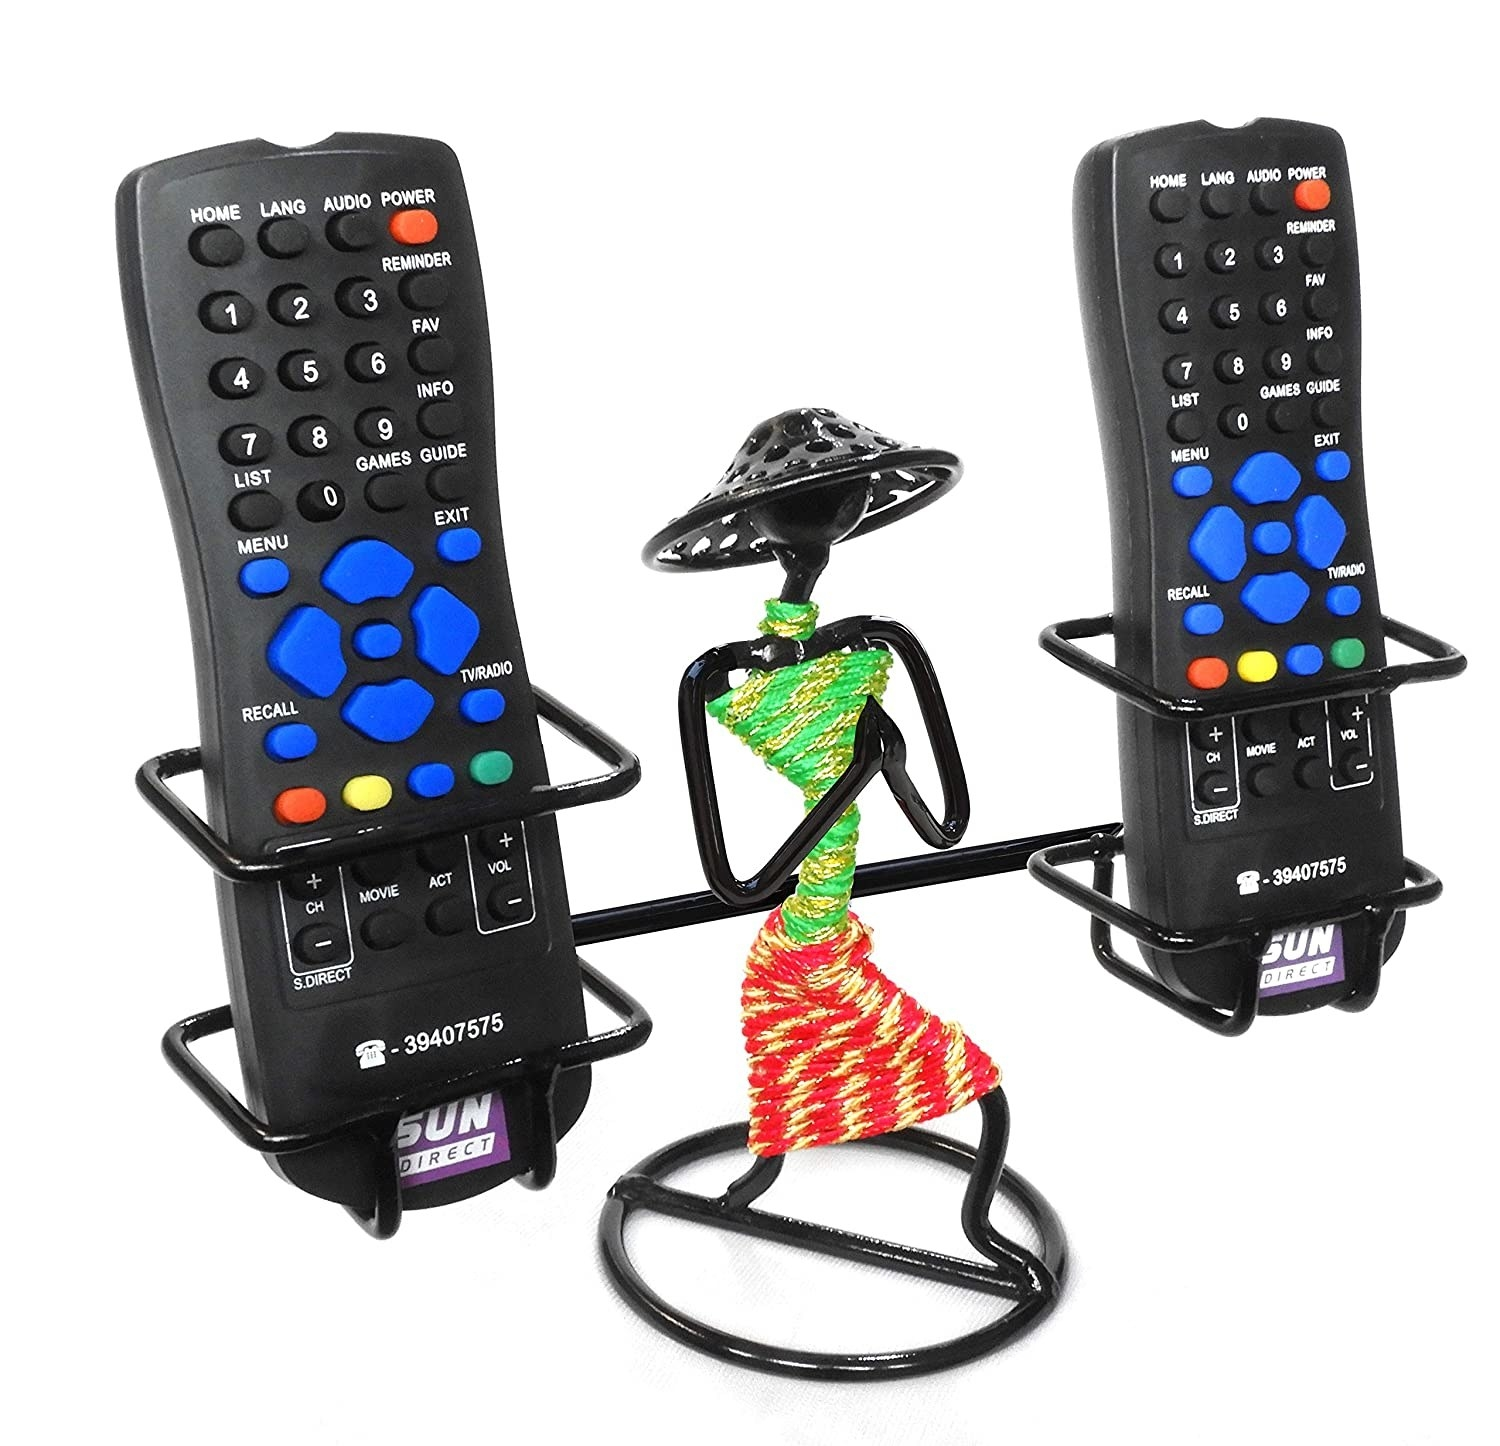 A lady shaped remote holder with remotes on the side